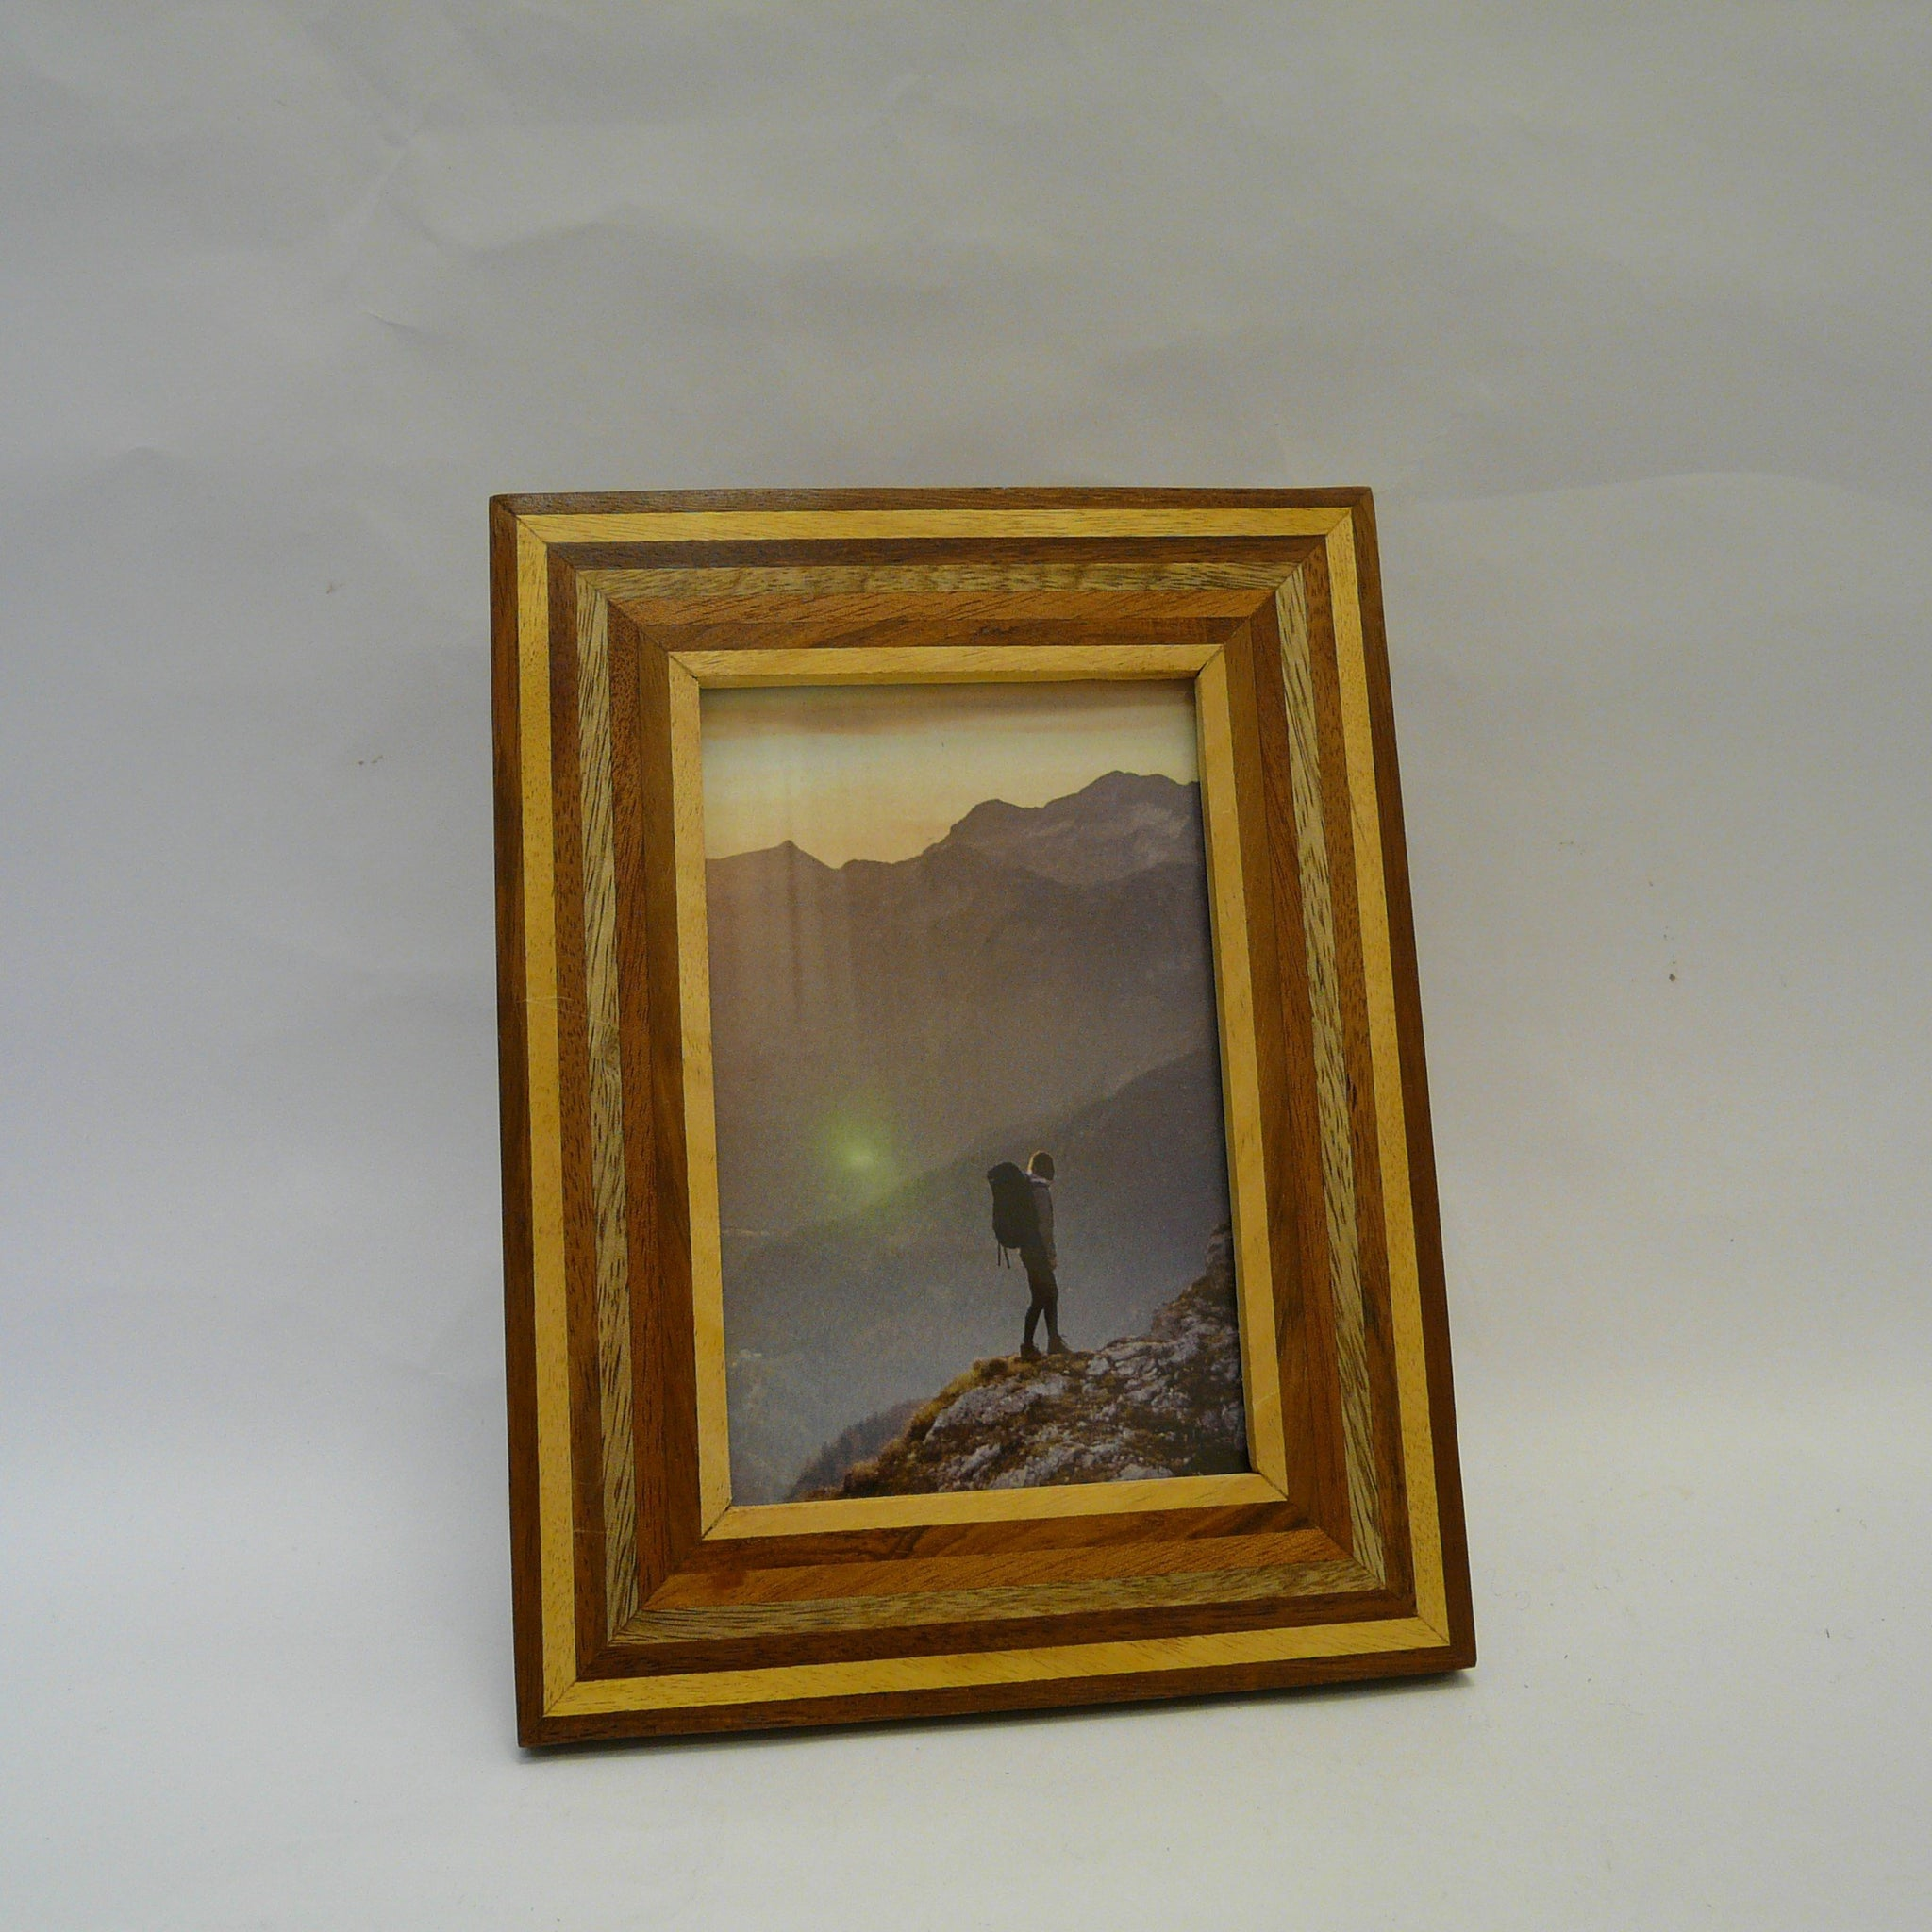 P1110477-fair-trade-mixed-woods-long-pieces-picture-frame-with-picture.jpg